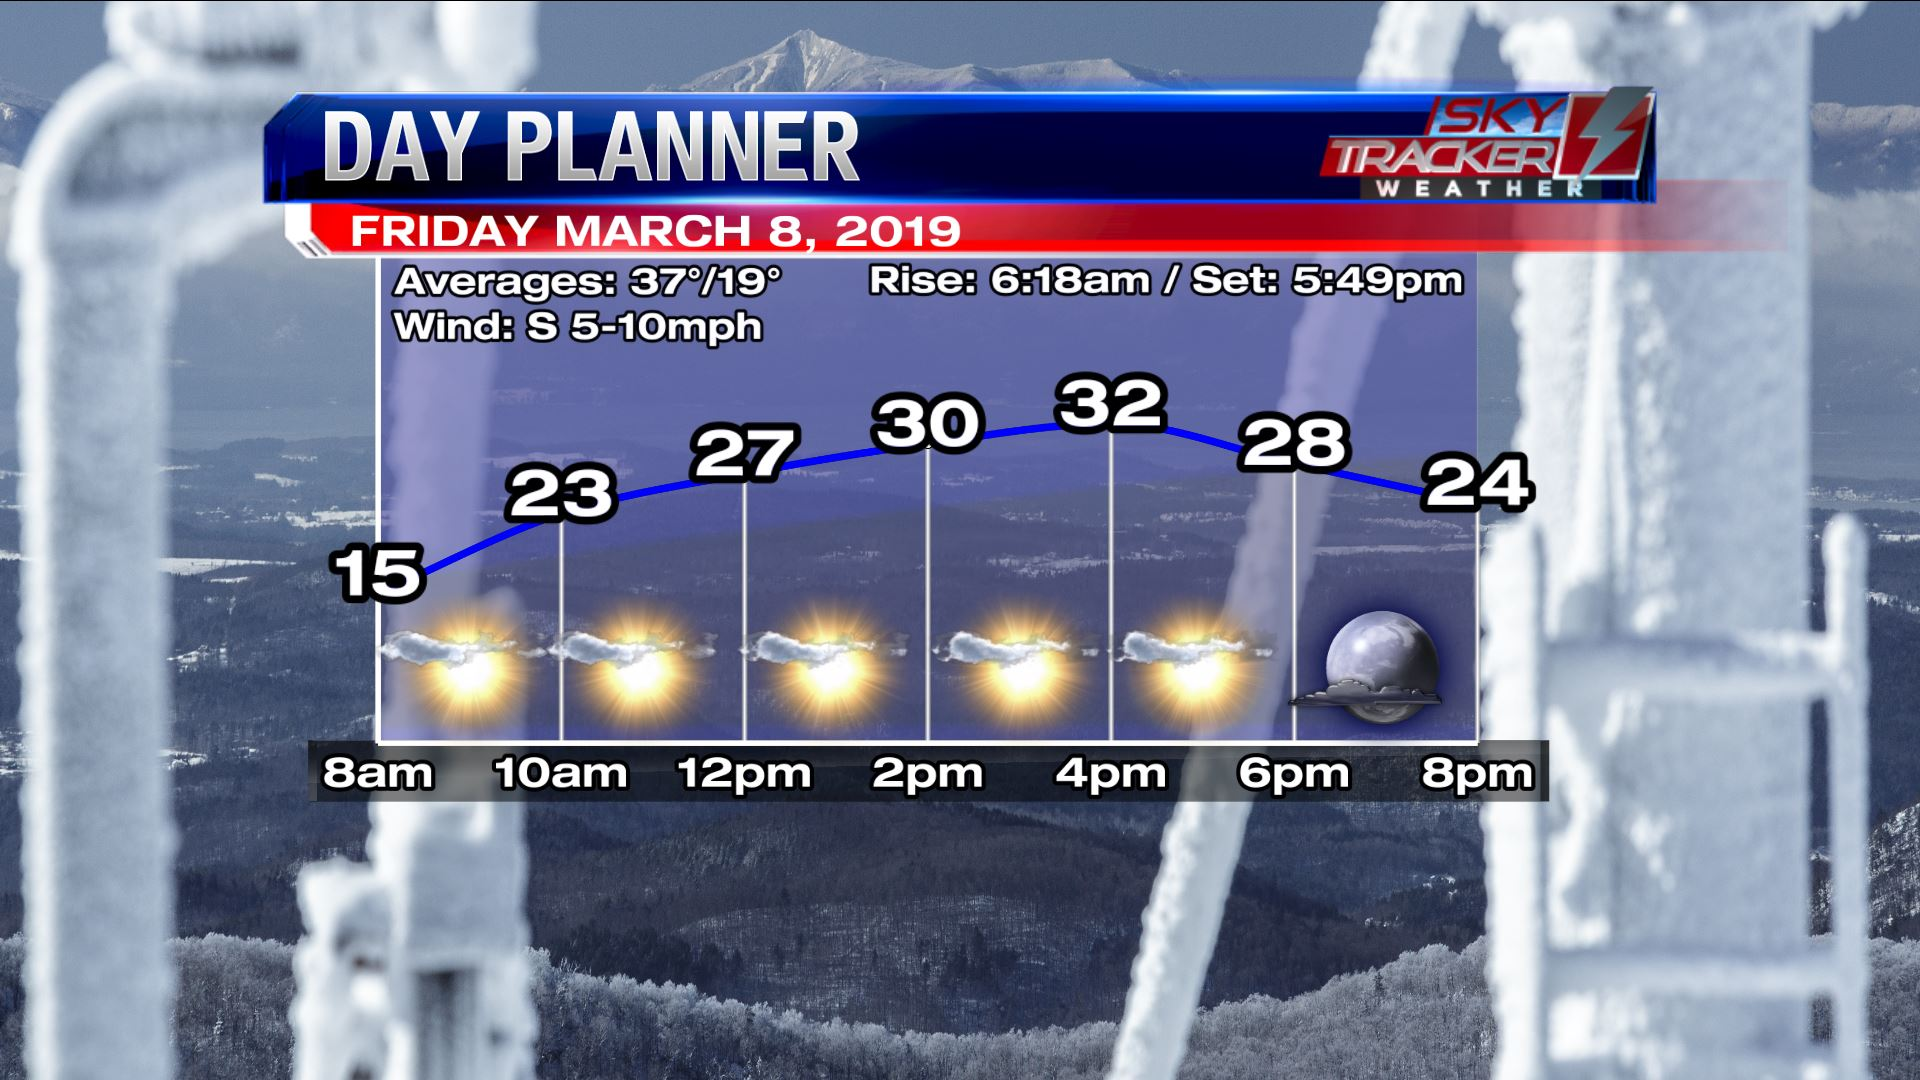 Planner for Friday March 8 2019